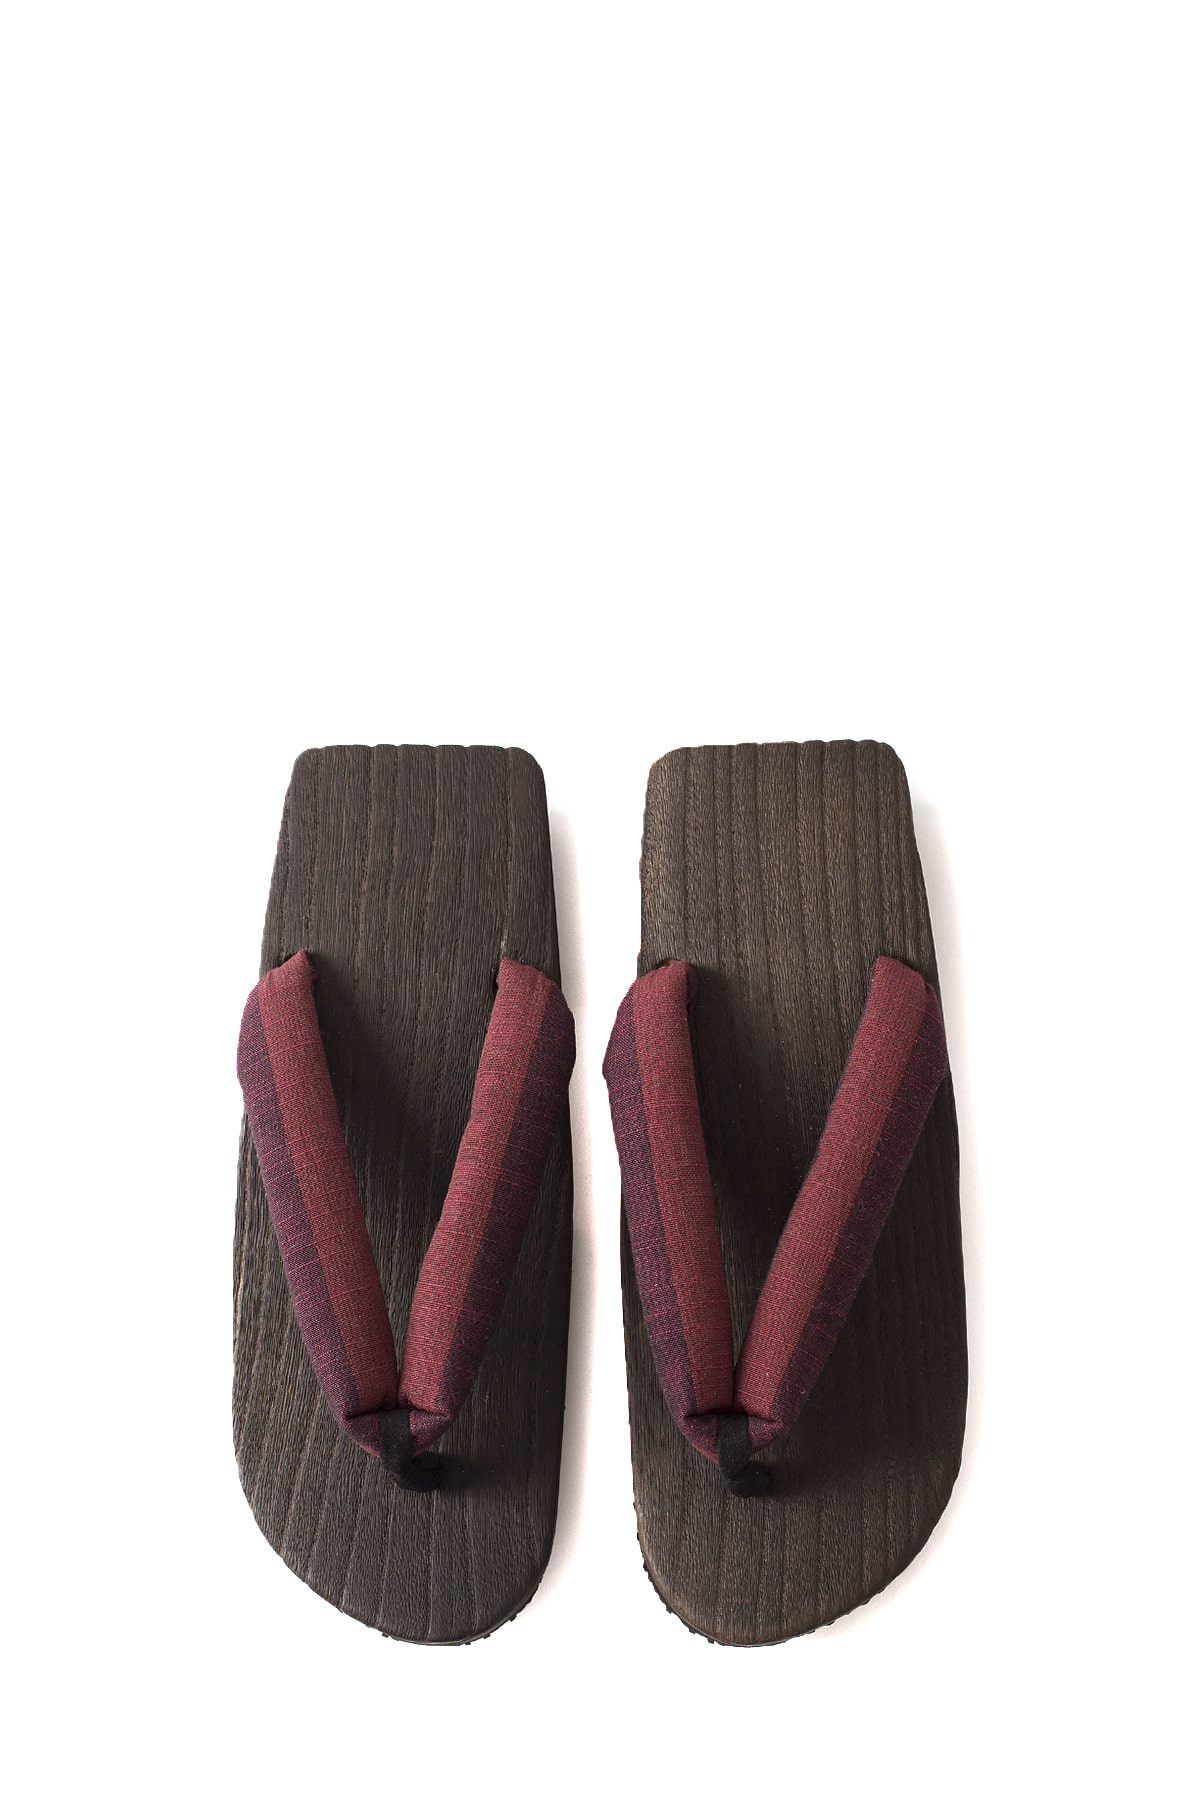 NEEDLES : Geta Sandals With Tsumugi Thong (Red)